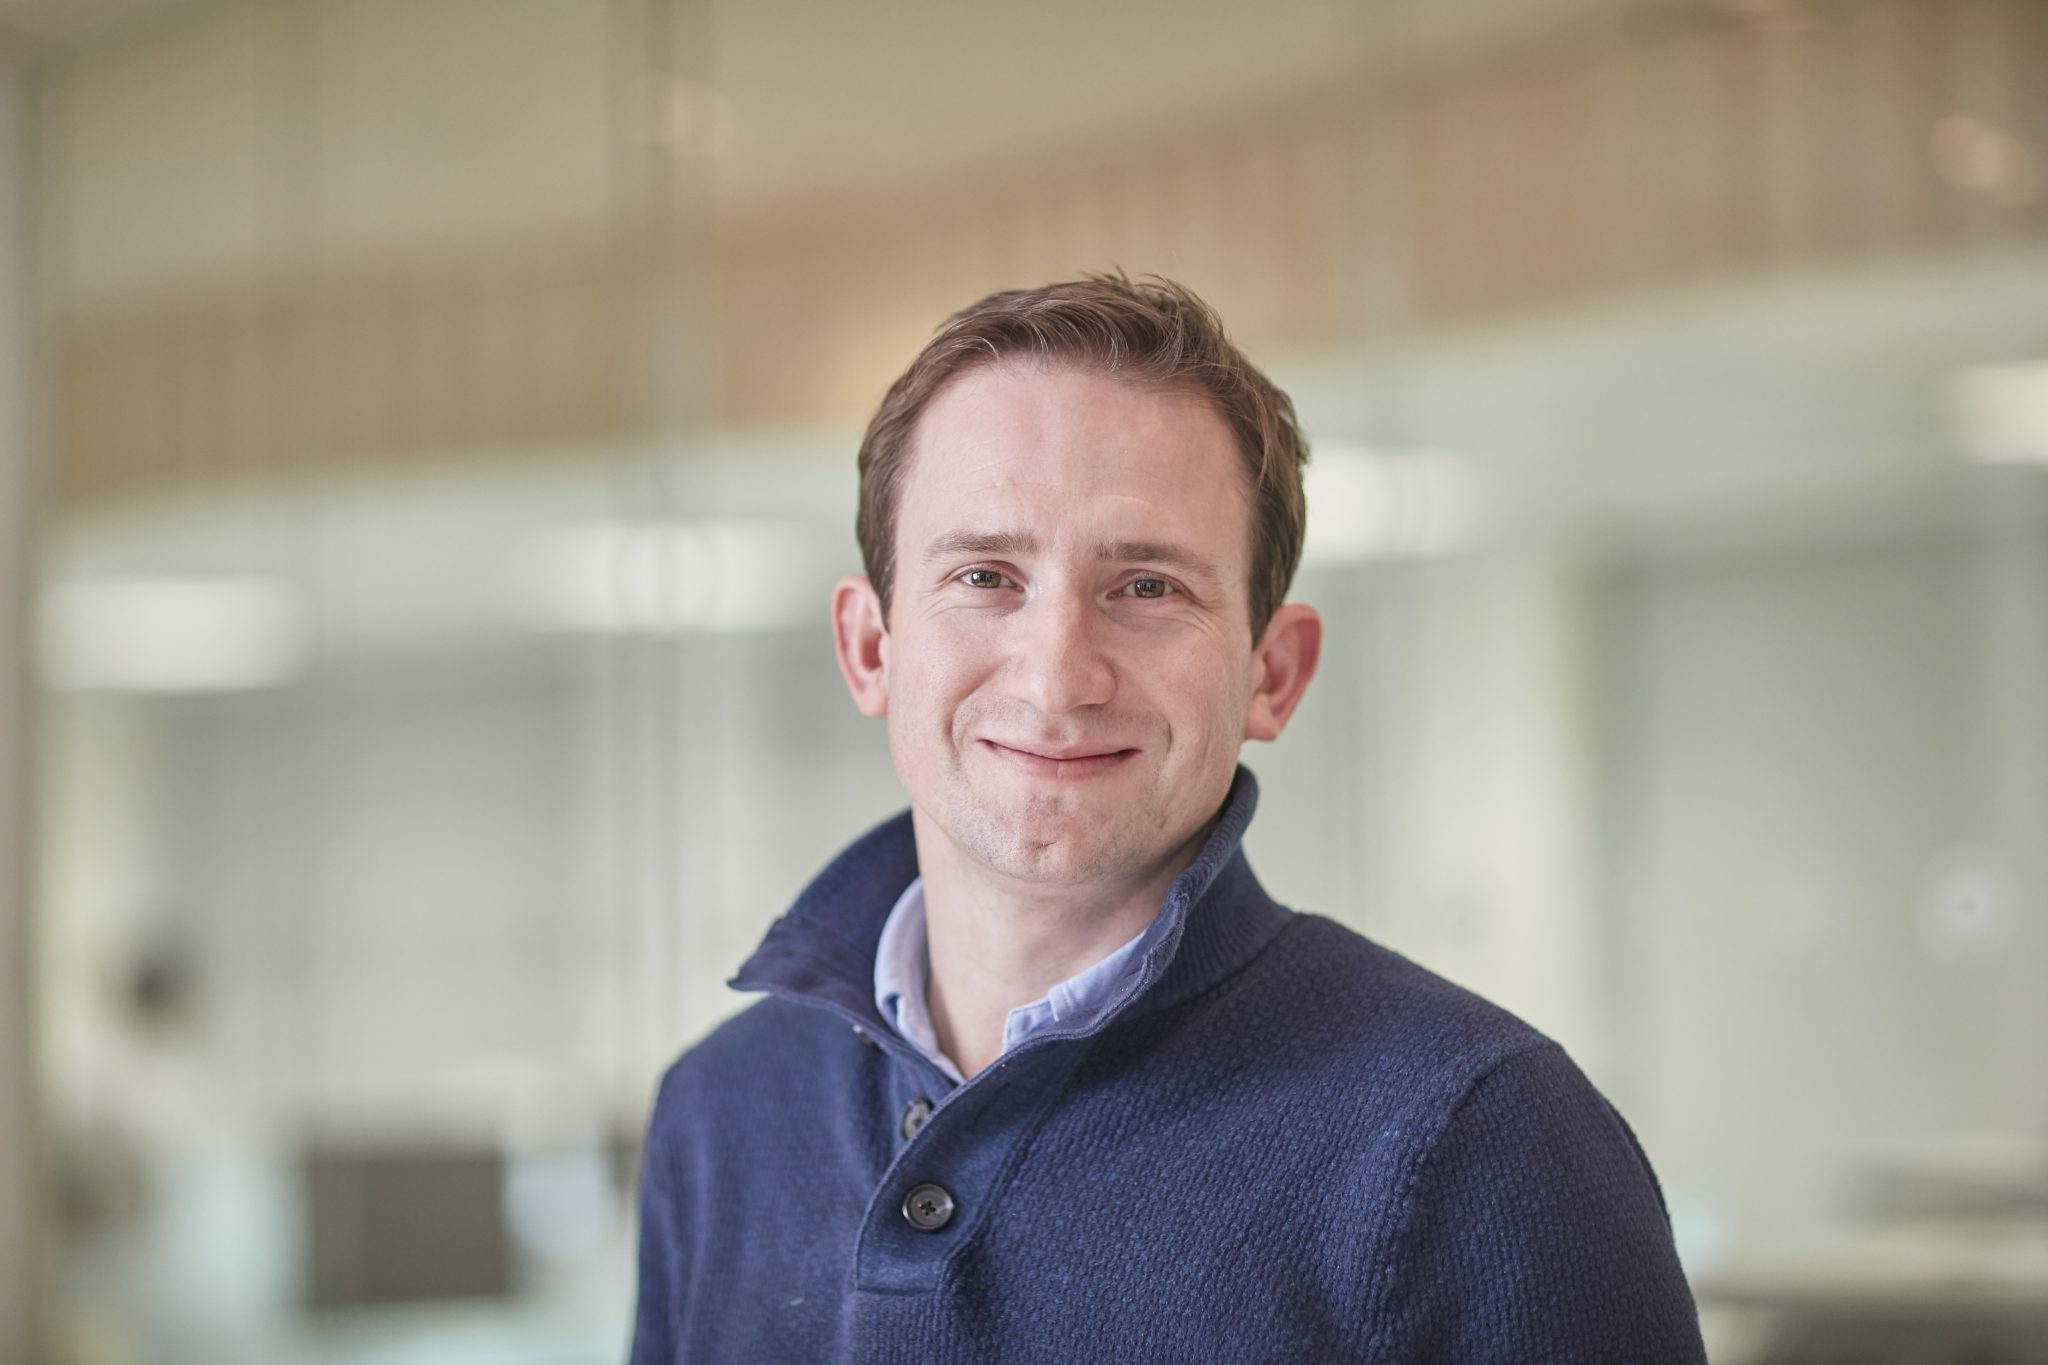 Tom Wehmeier, partner and head of insights at Atomico